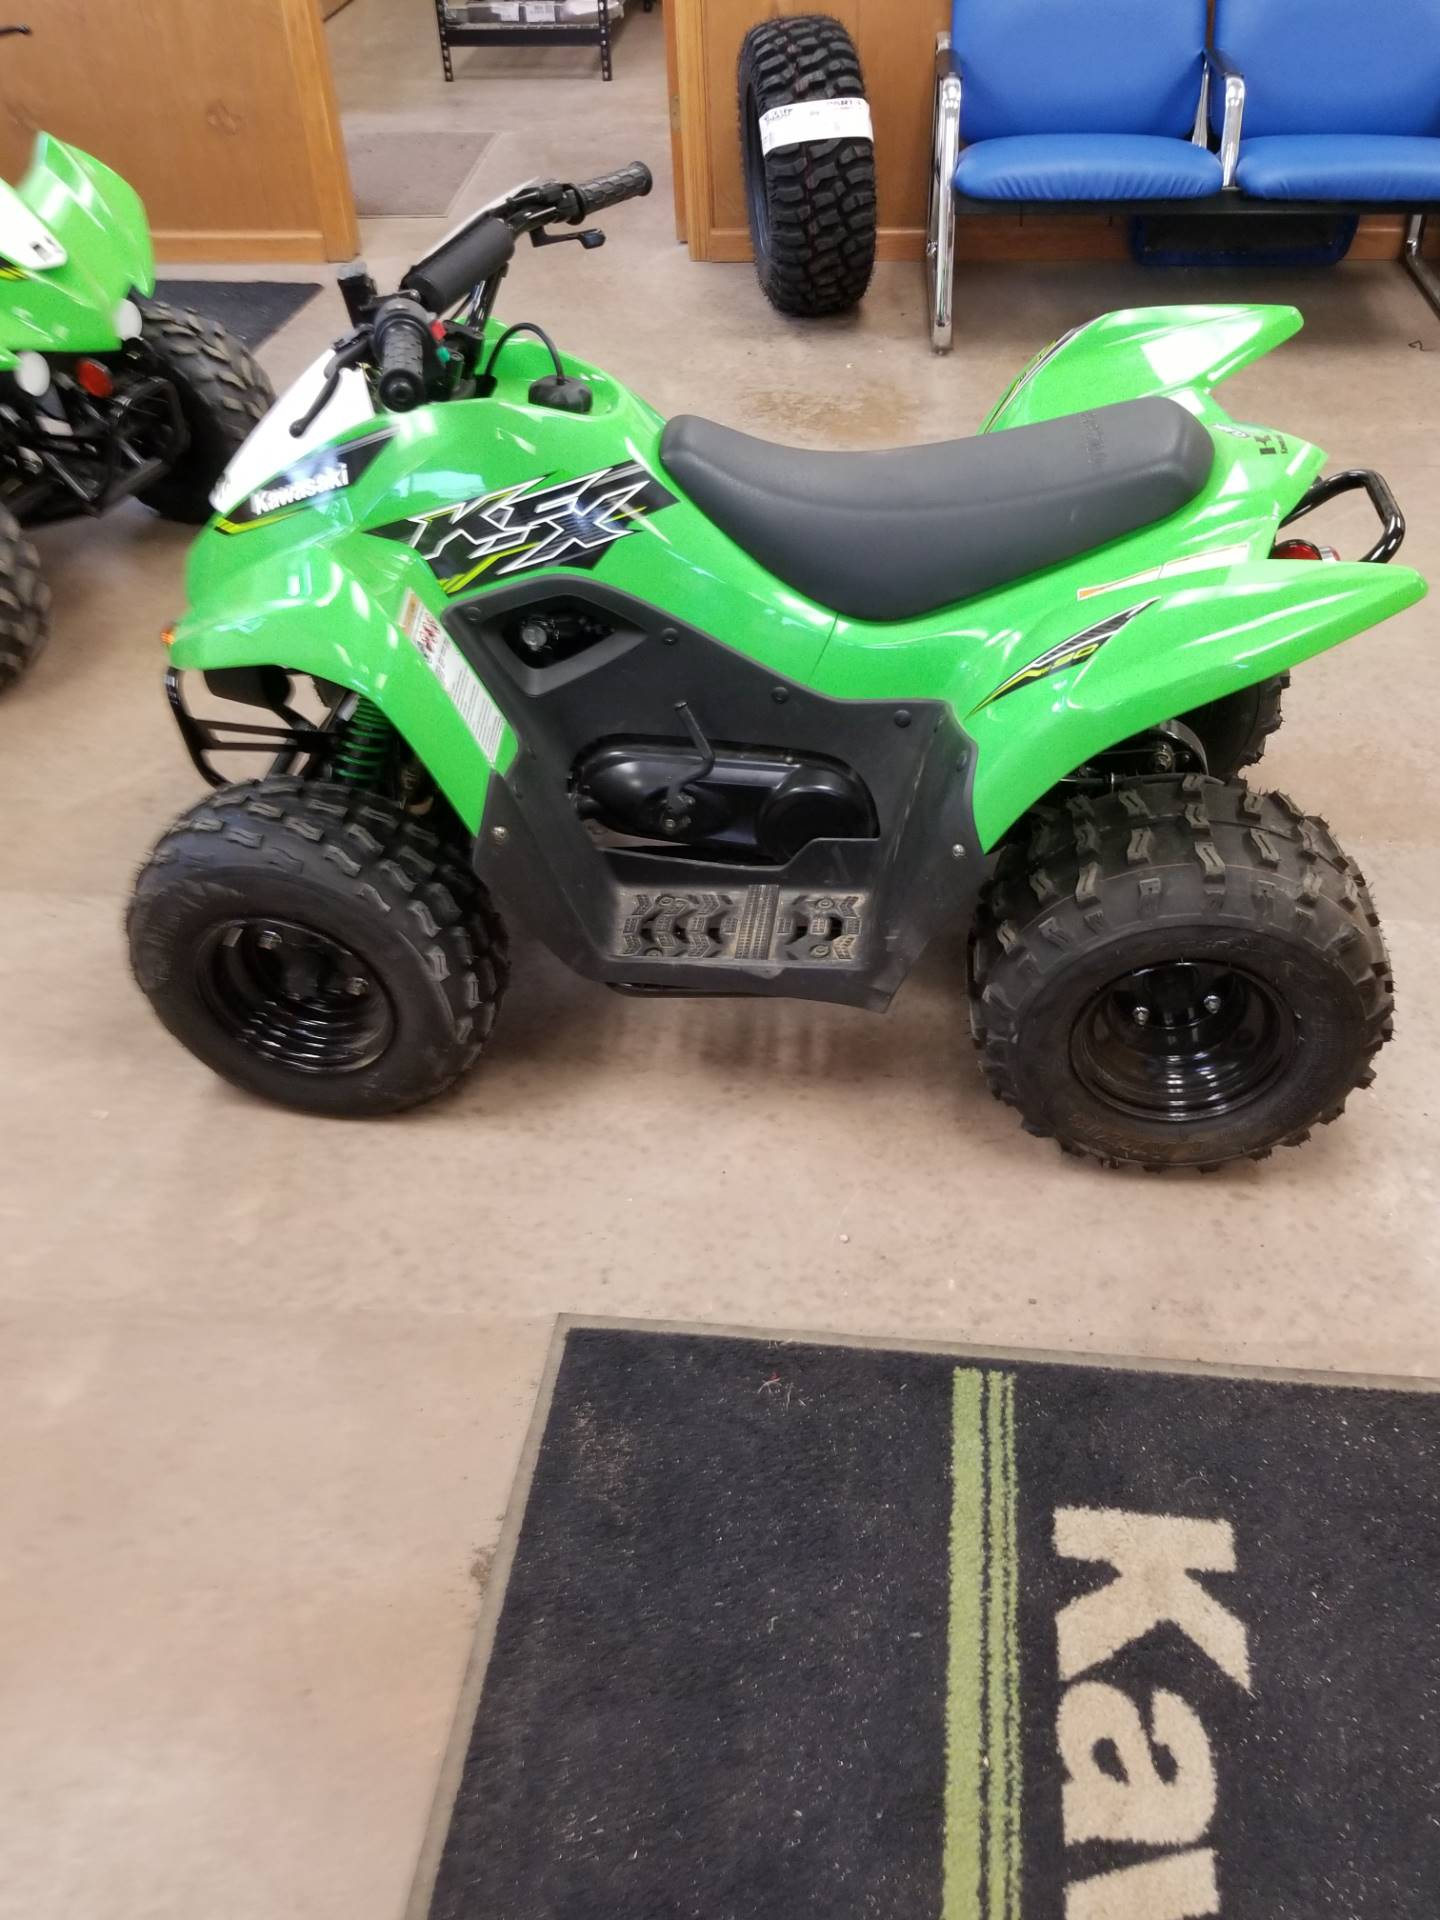 2019 Kawasaki KFX 90 in Hillsboro, Wisconsin - Photo 4